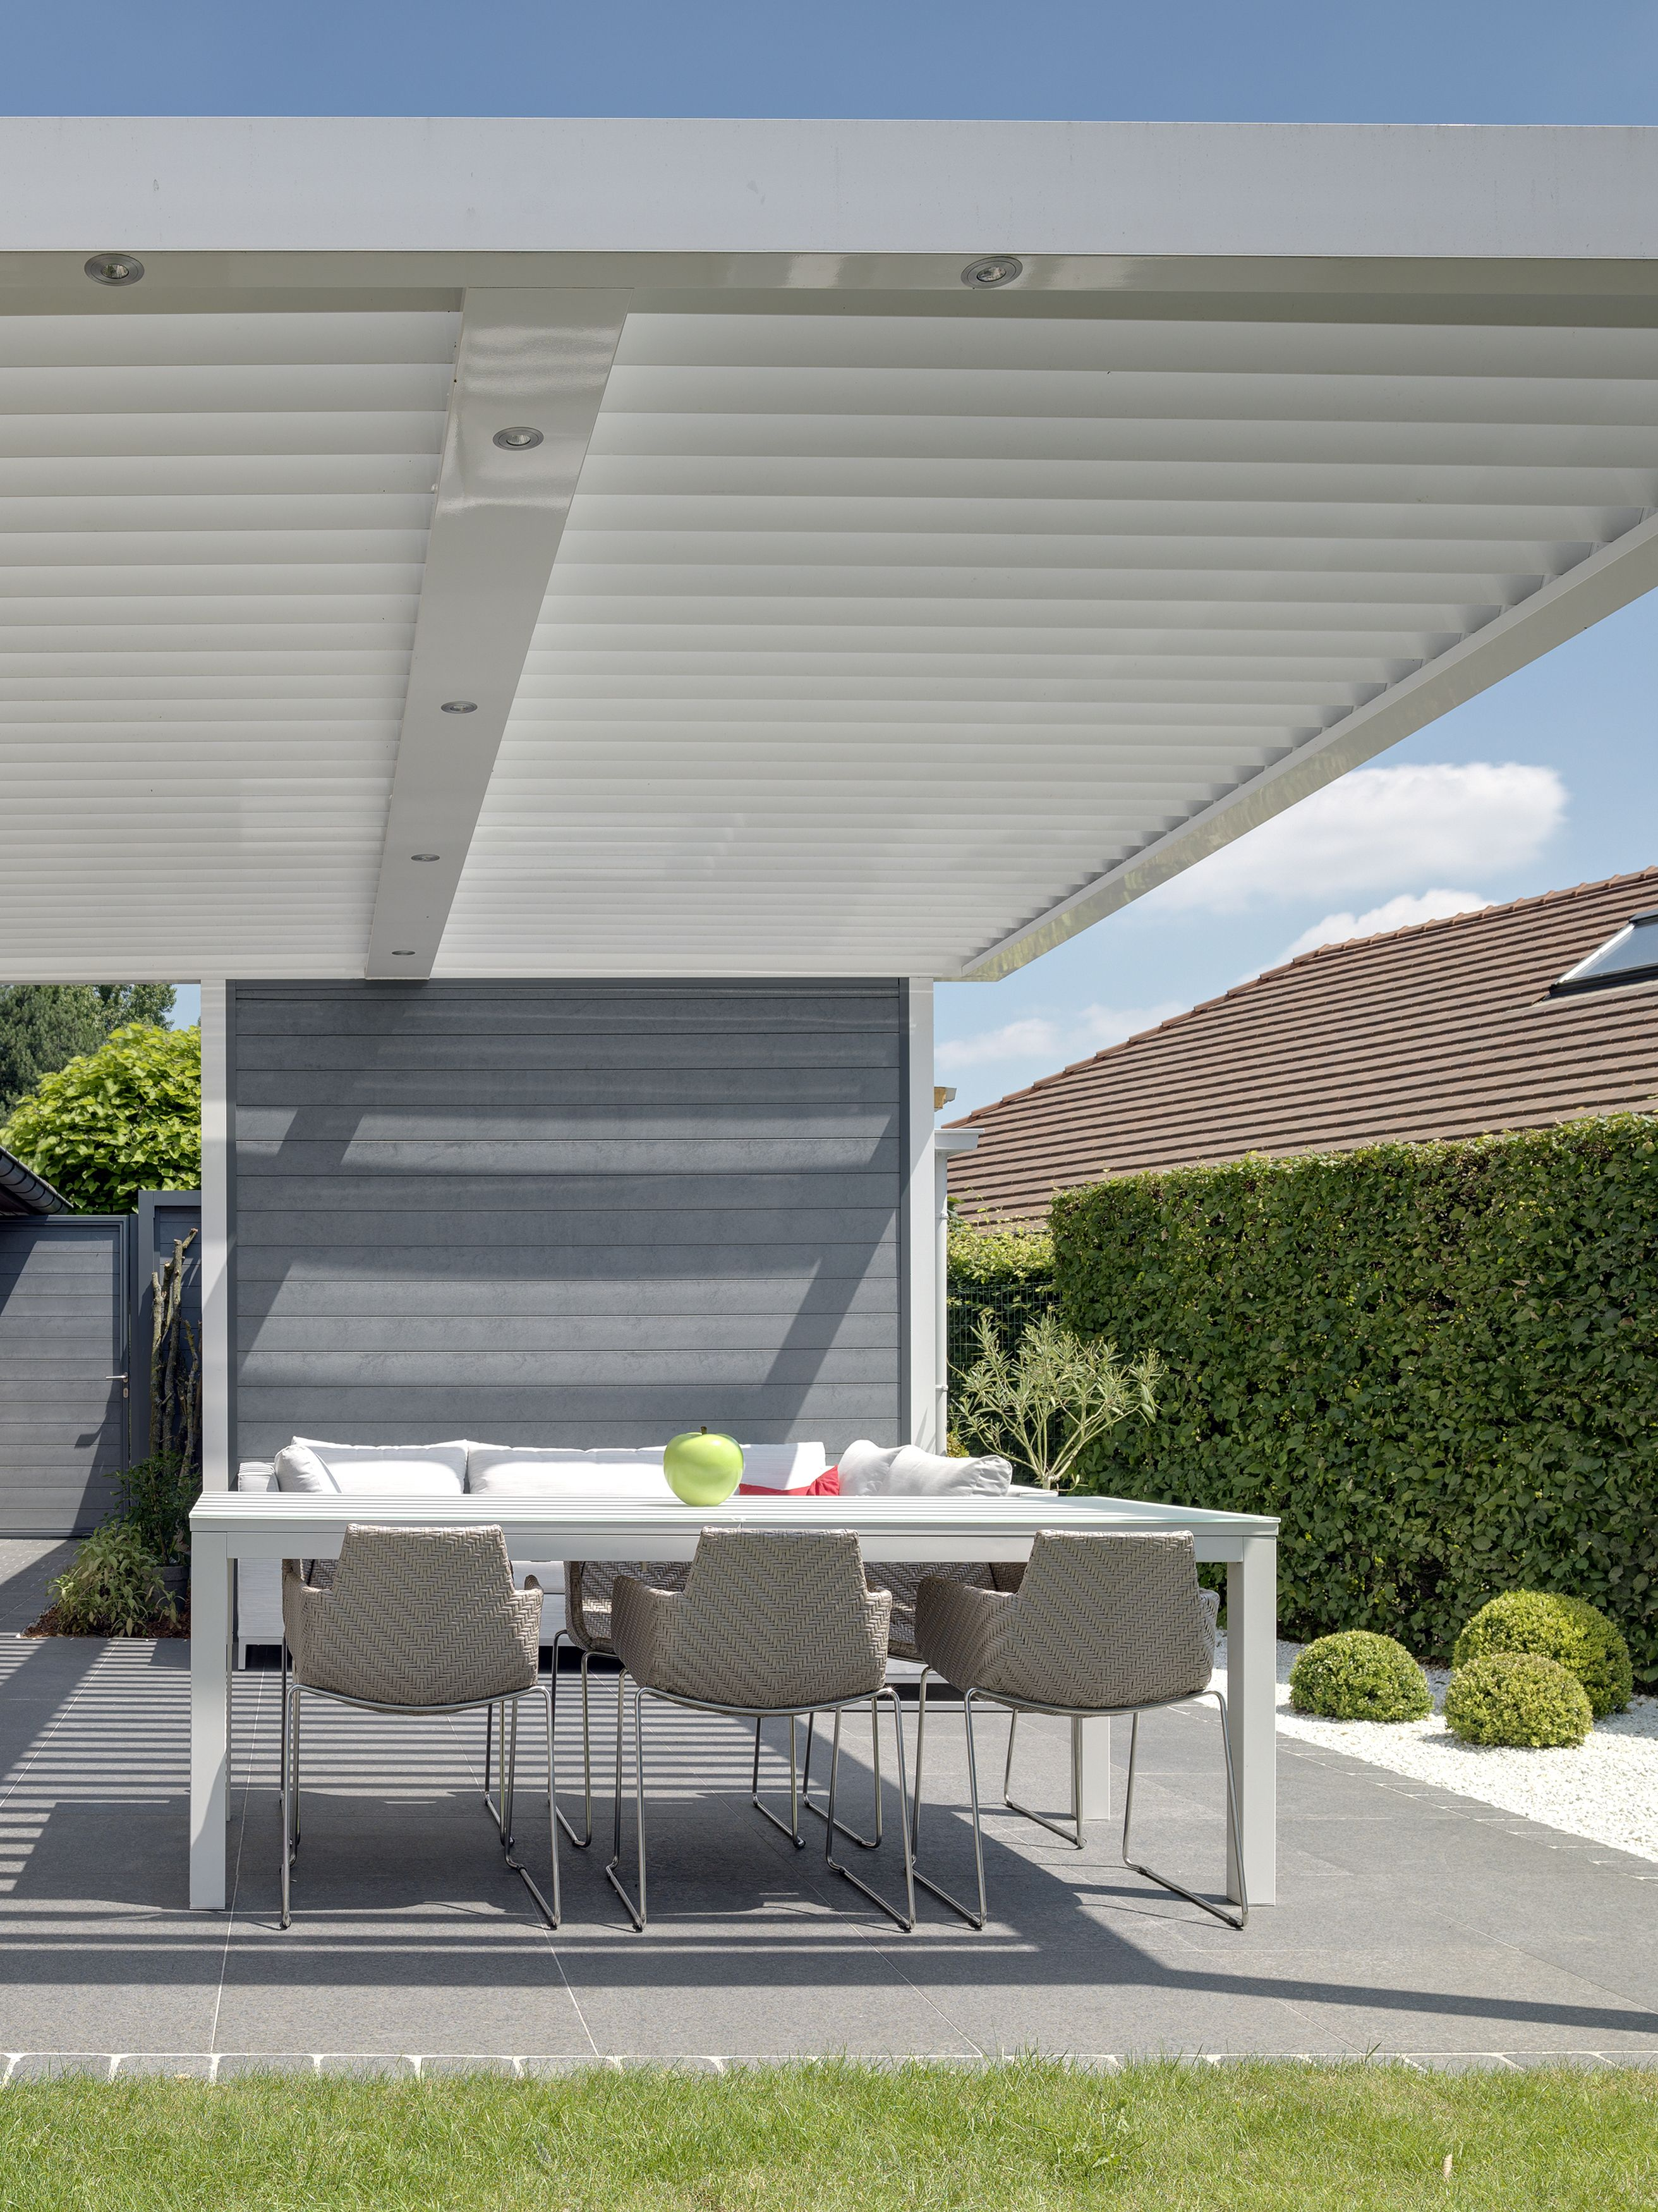 The Umbris patio roofing system is a bespoke ... on Bespoke Outdoor Living id=42919